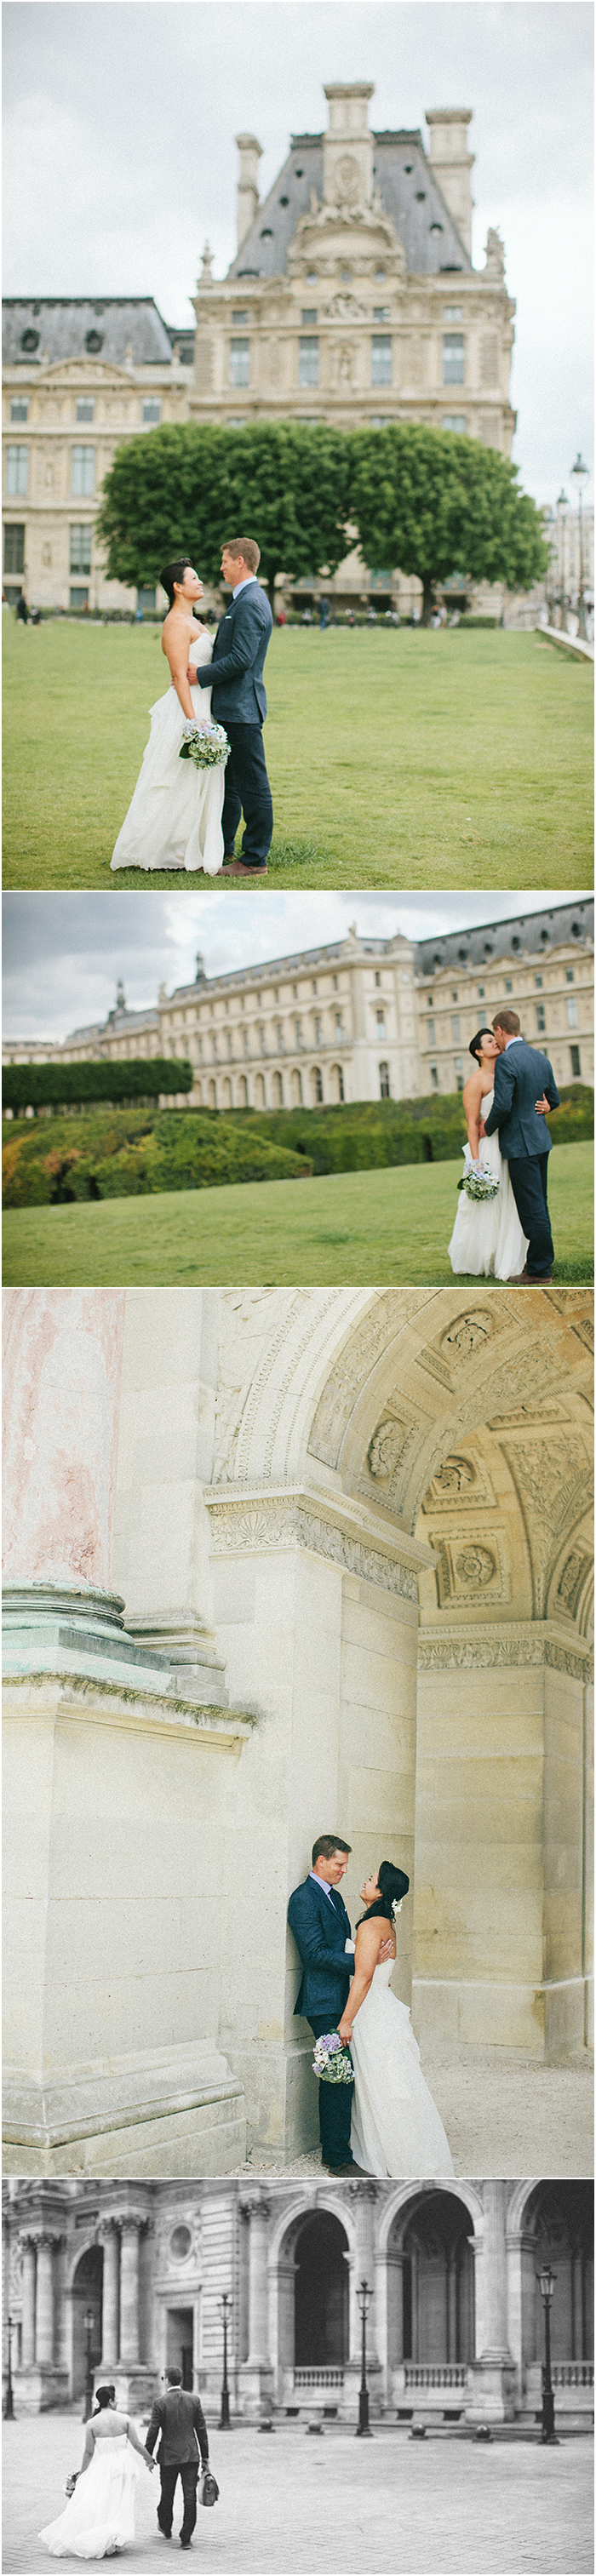 parisweddingphotographer04